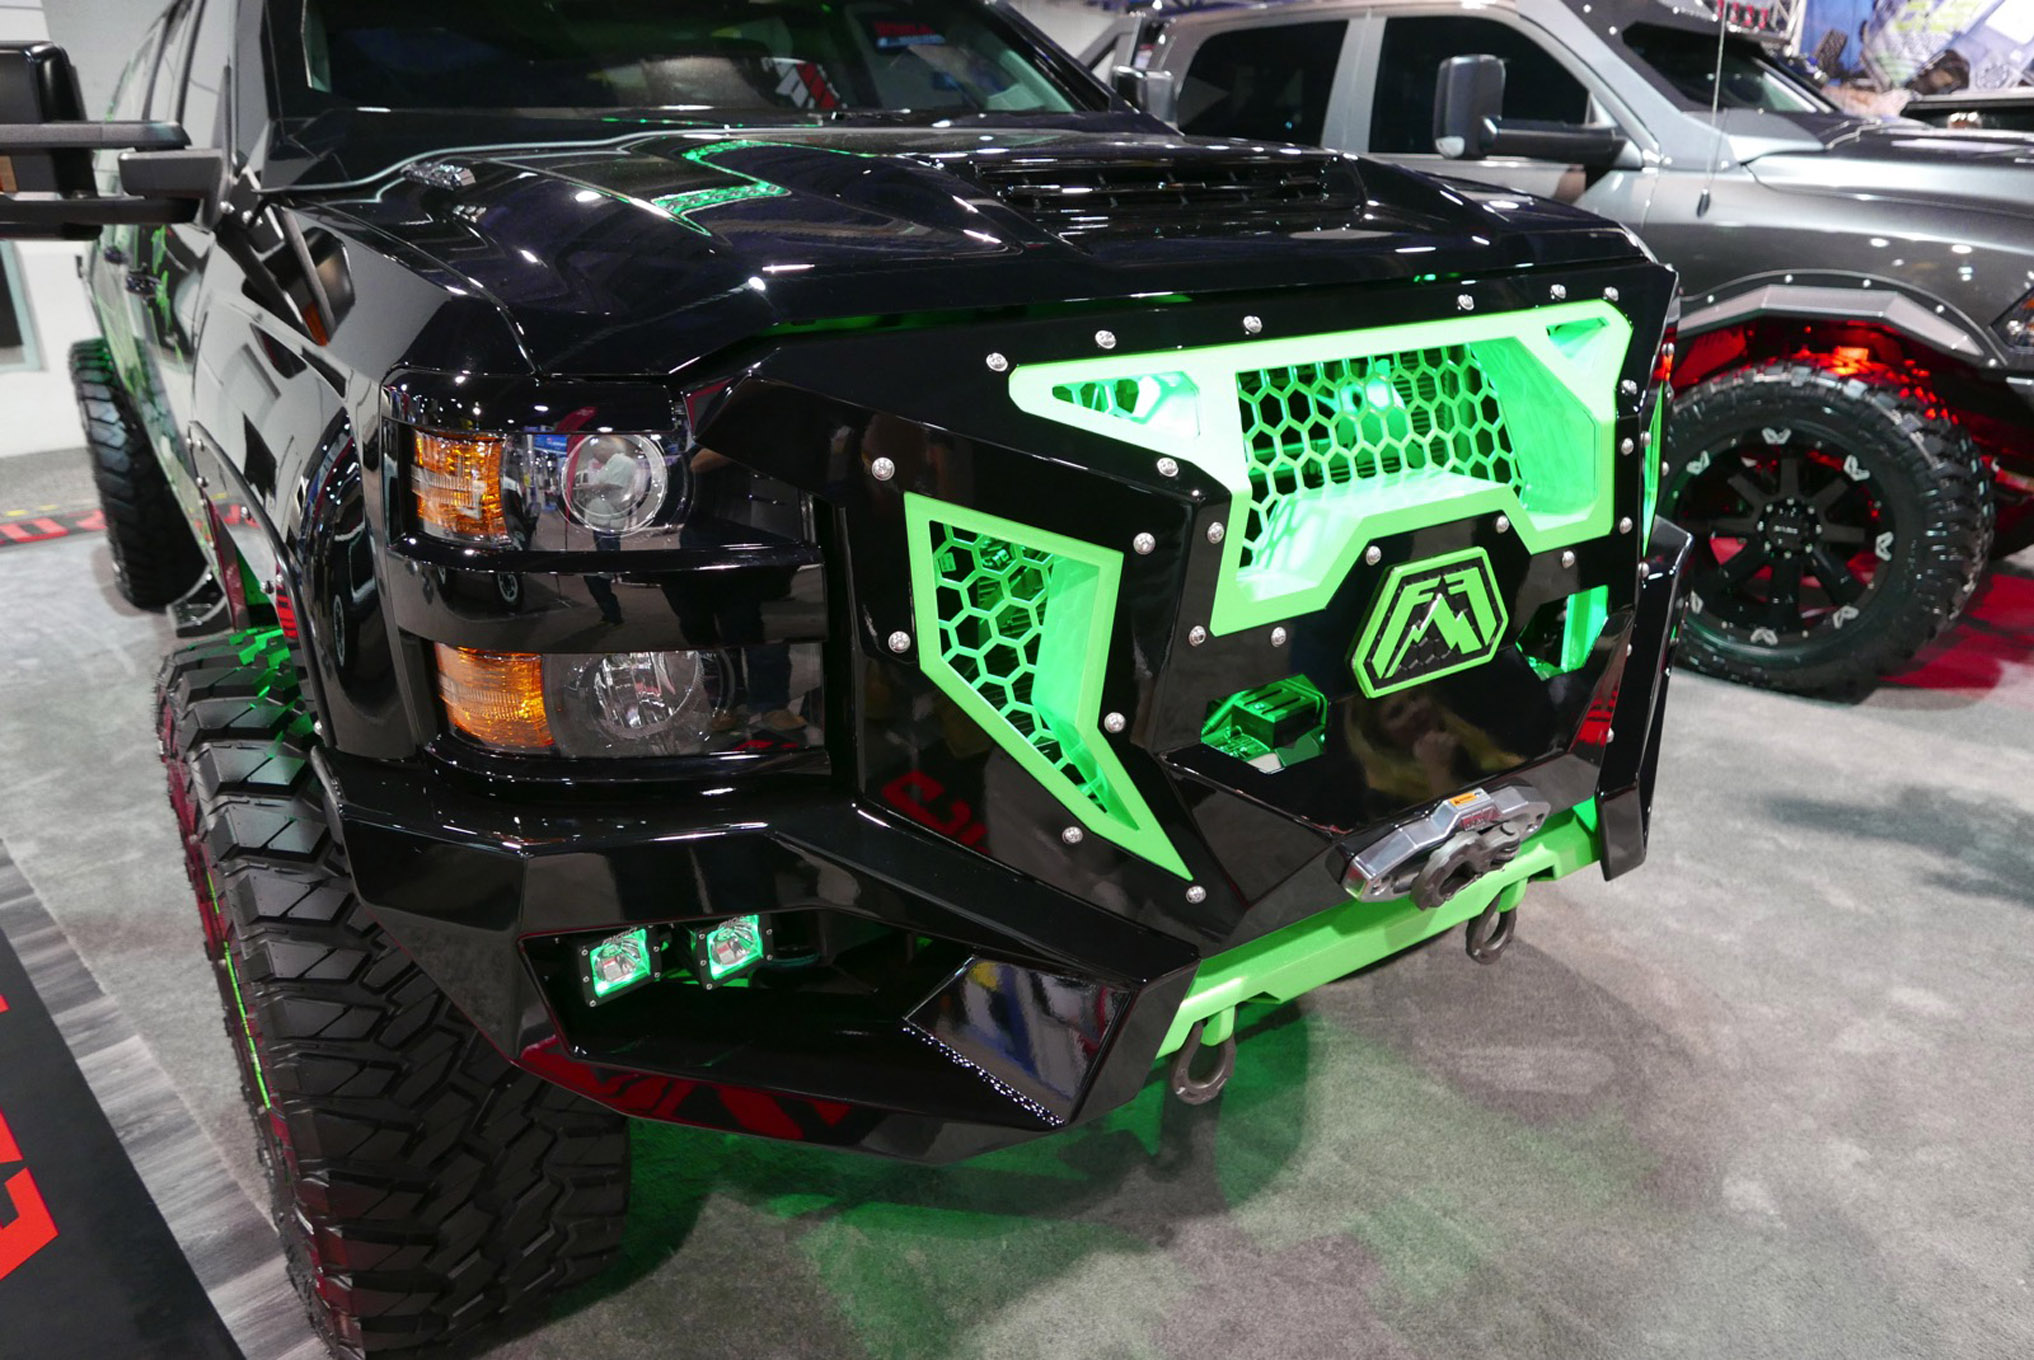 231 sema 2017 day 1 south upper hall gallery photos